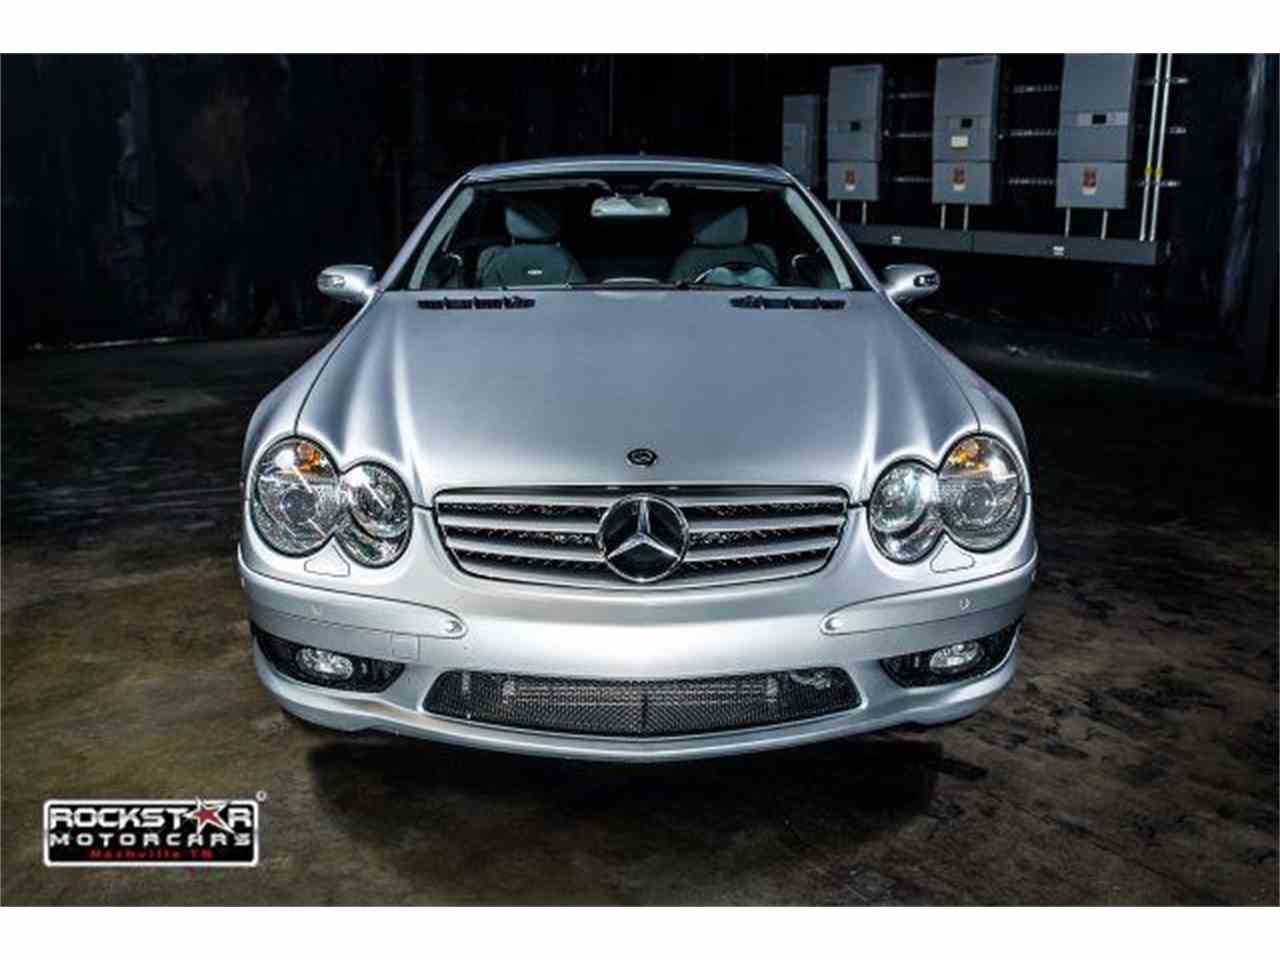 Large Picture of 2006 Mercedes-Benz SL-Class located in Tennessee - $17,999.00 Offered by Rockstar Motorcars - JJVG